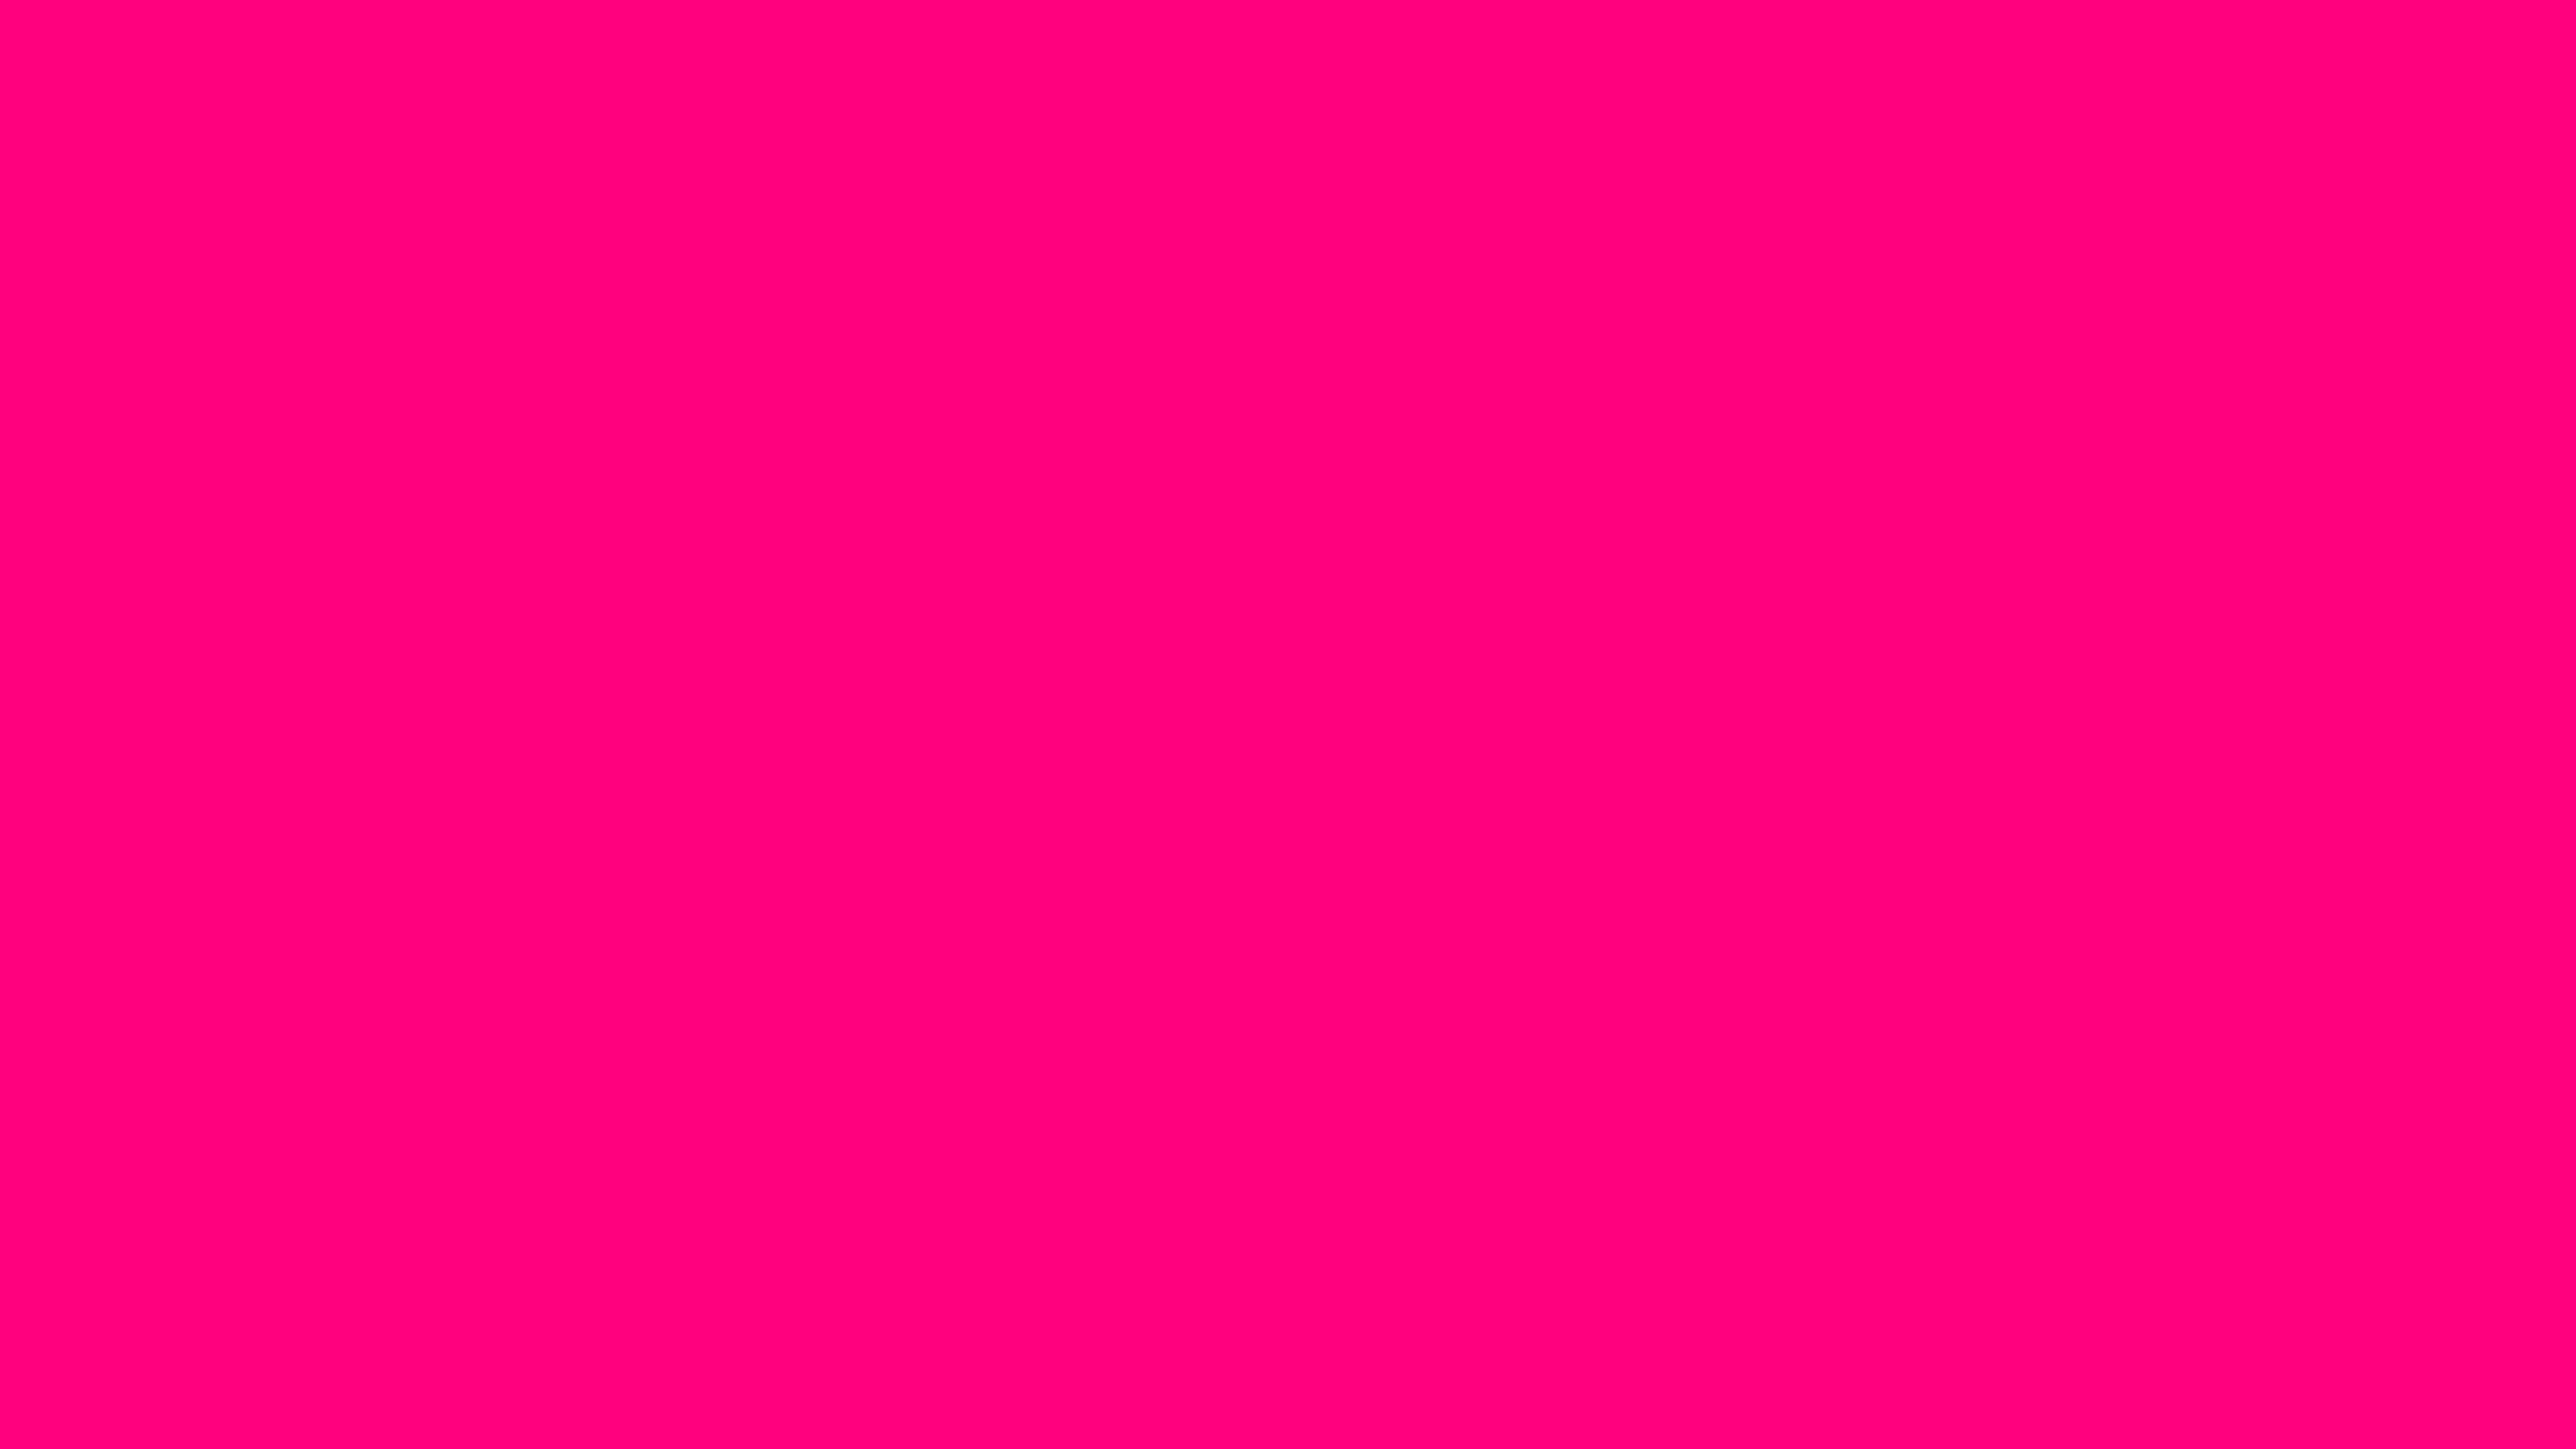 3840x2160 Bright Pink Solid Color Background